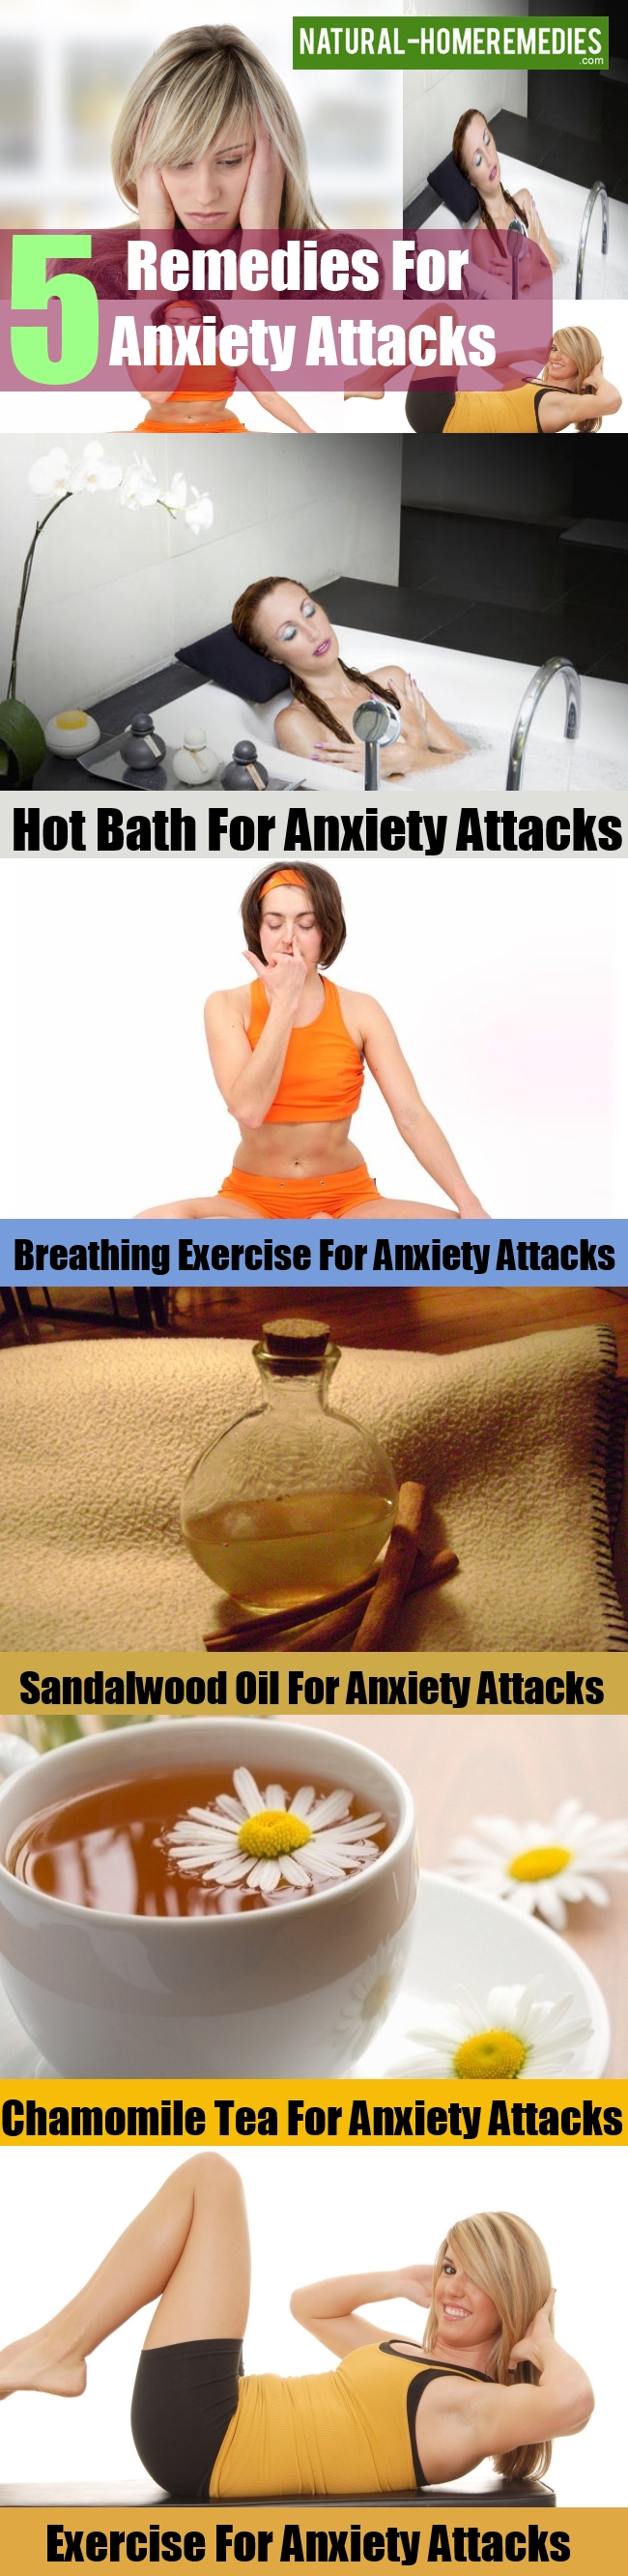 Remedies For Anxiety Attacks